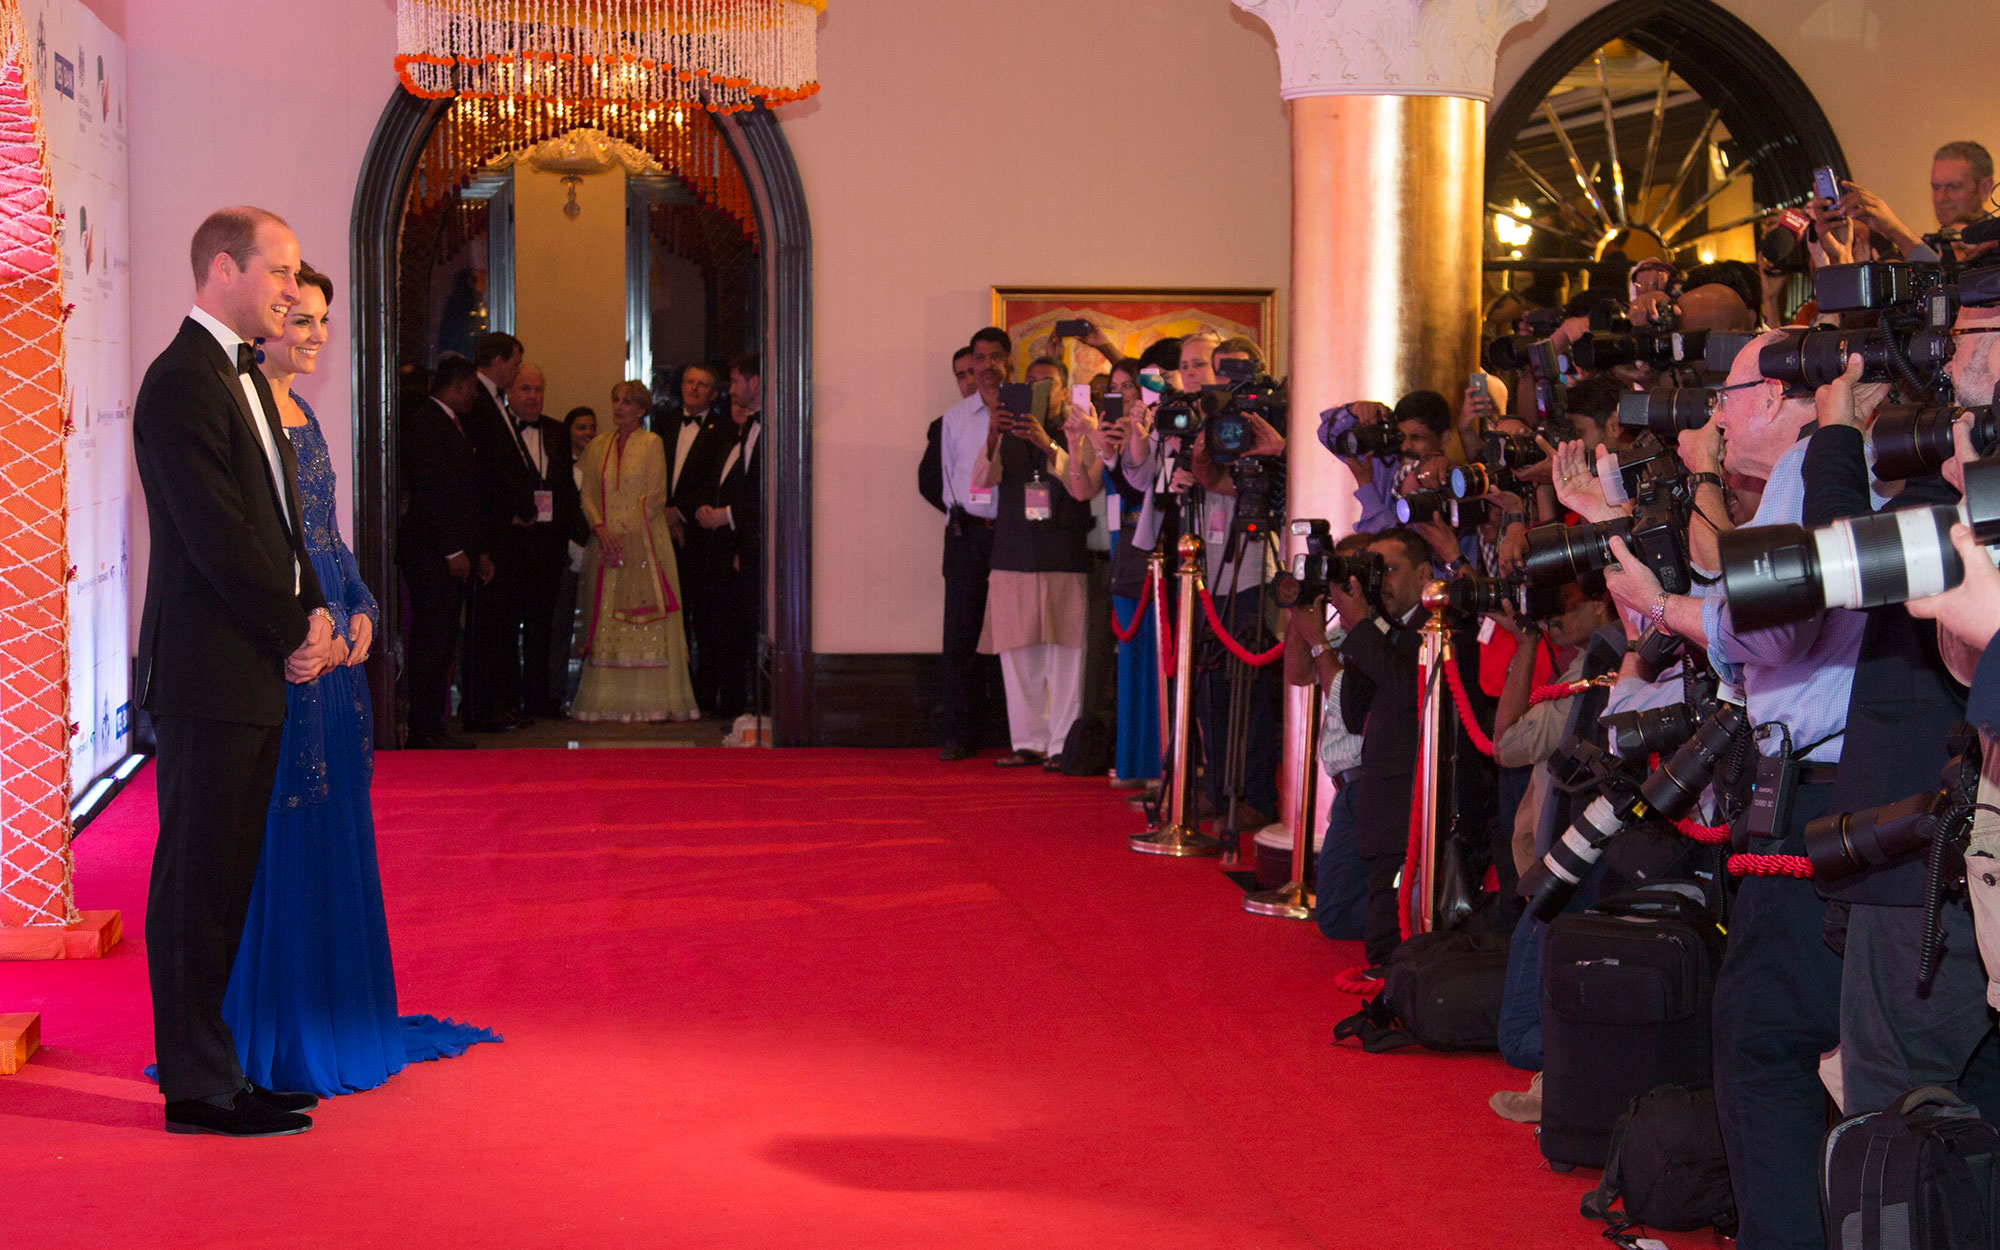 Prince William and Kate Middleton Embark on their Royal Tour of India and Bhutan: Dazzling at a Bollywood Ball